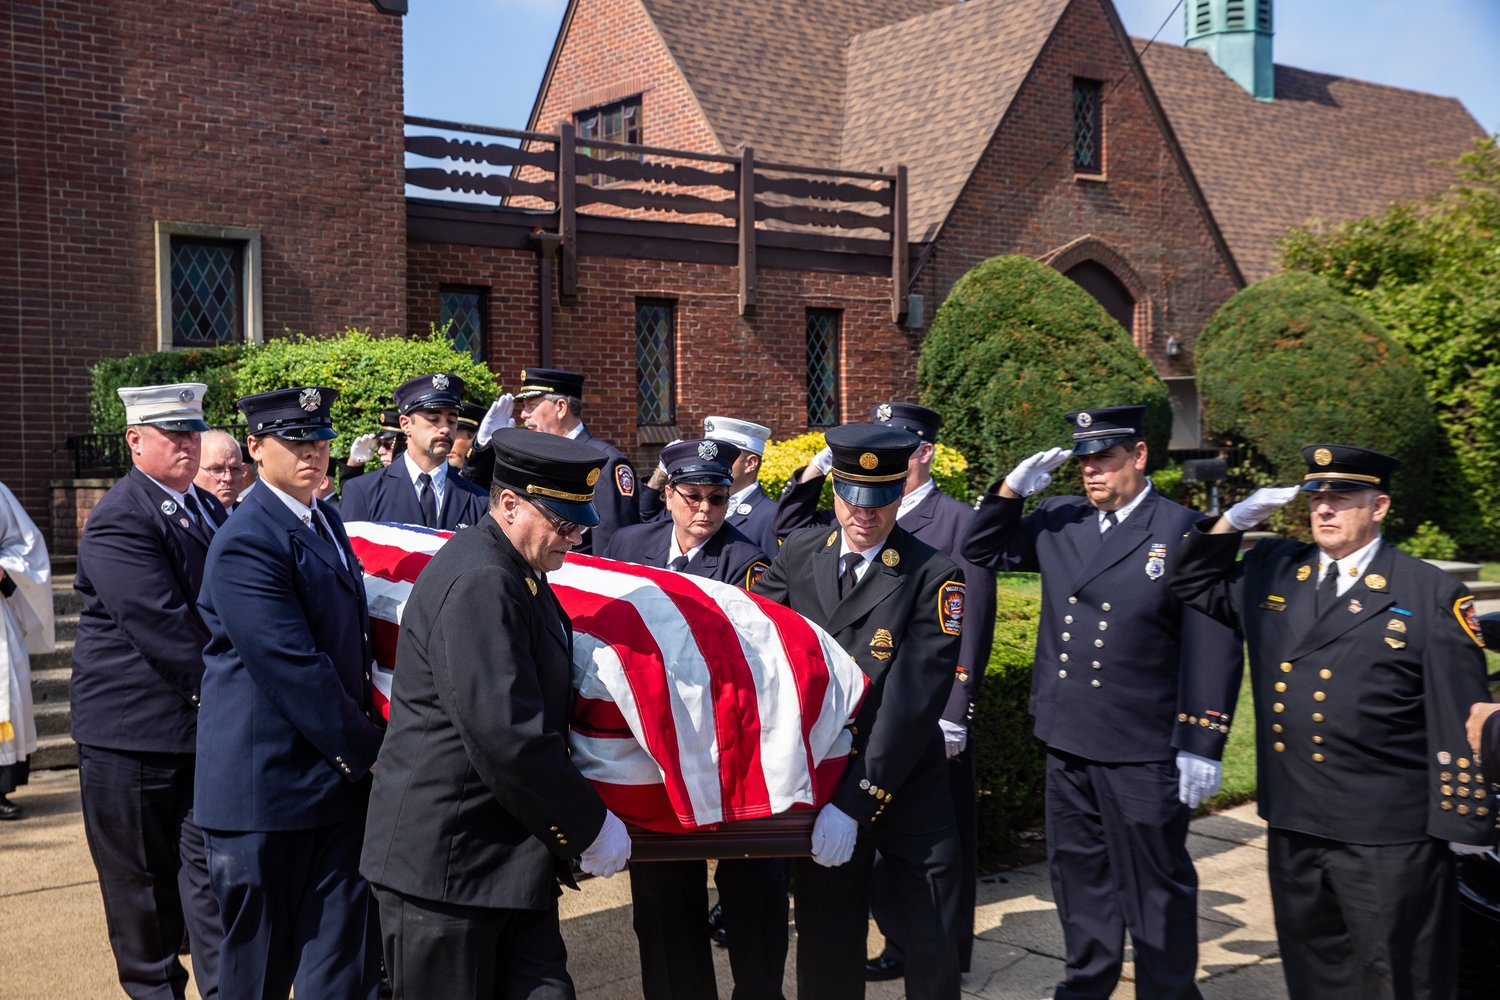 Valley Stream Firefighters gathered on Sept. 3 for Walter Weltner's funeral, held at his beloved church -- the Lutheran Church of Our Savior in Valley Stream.